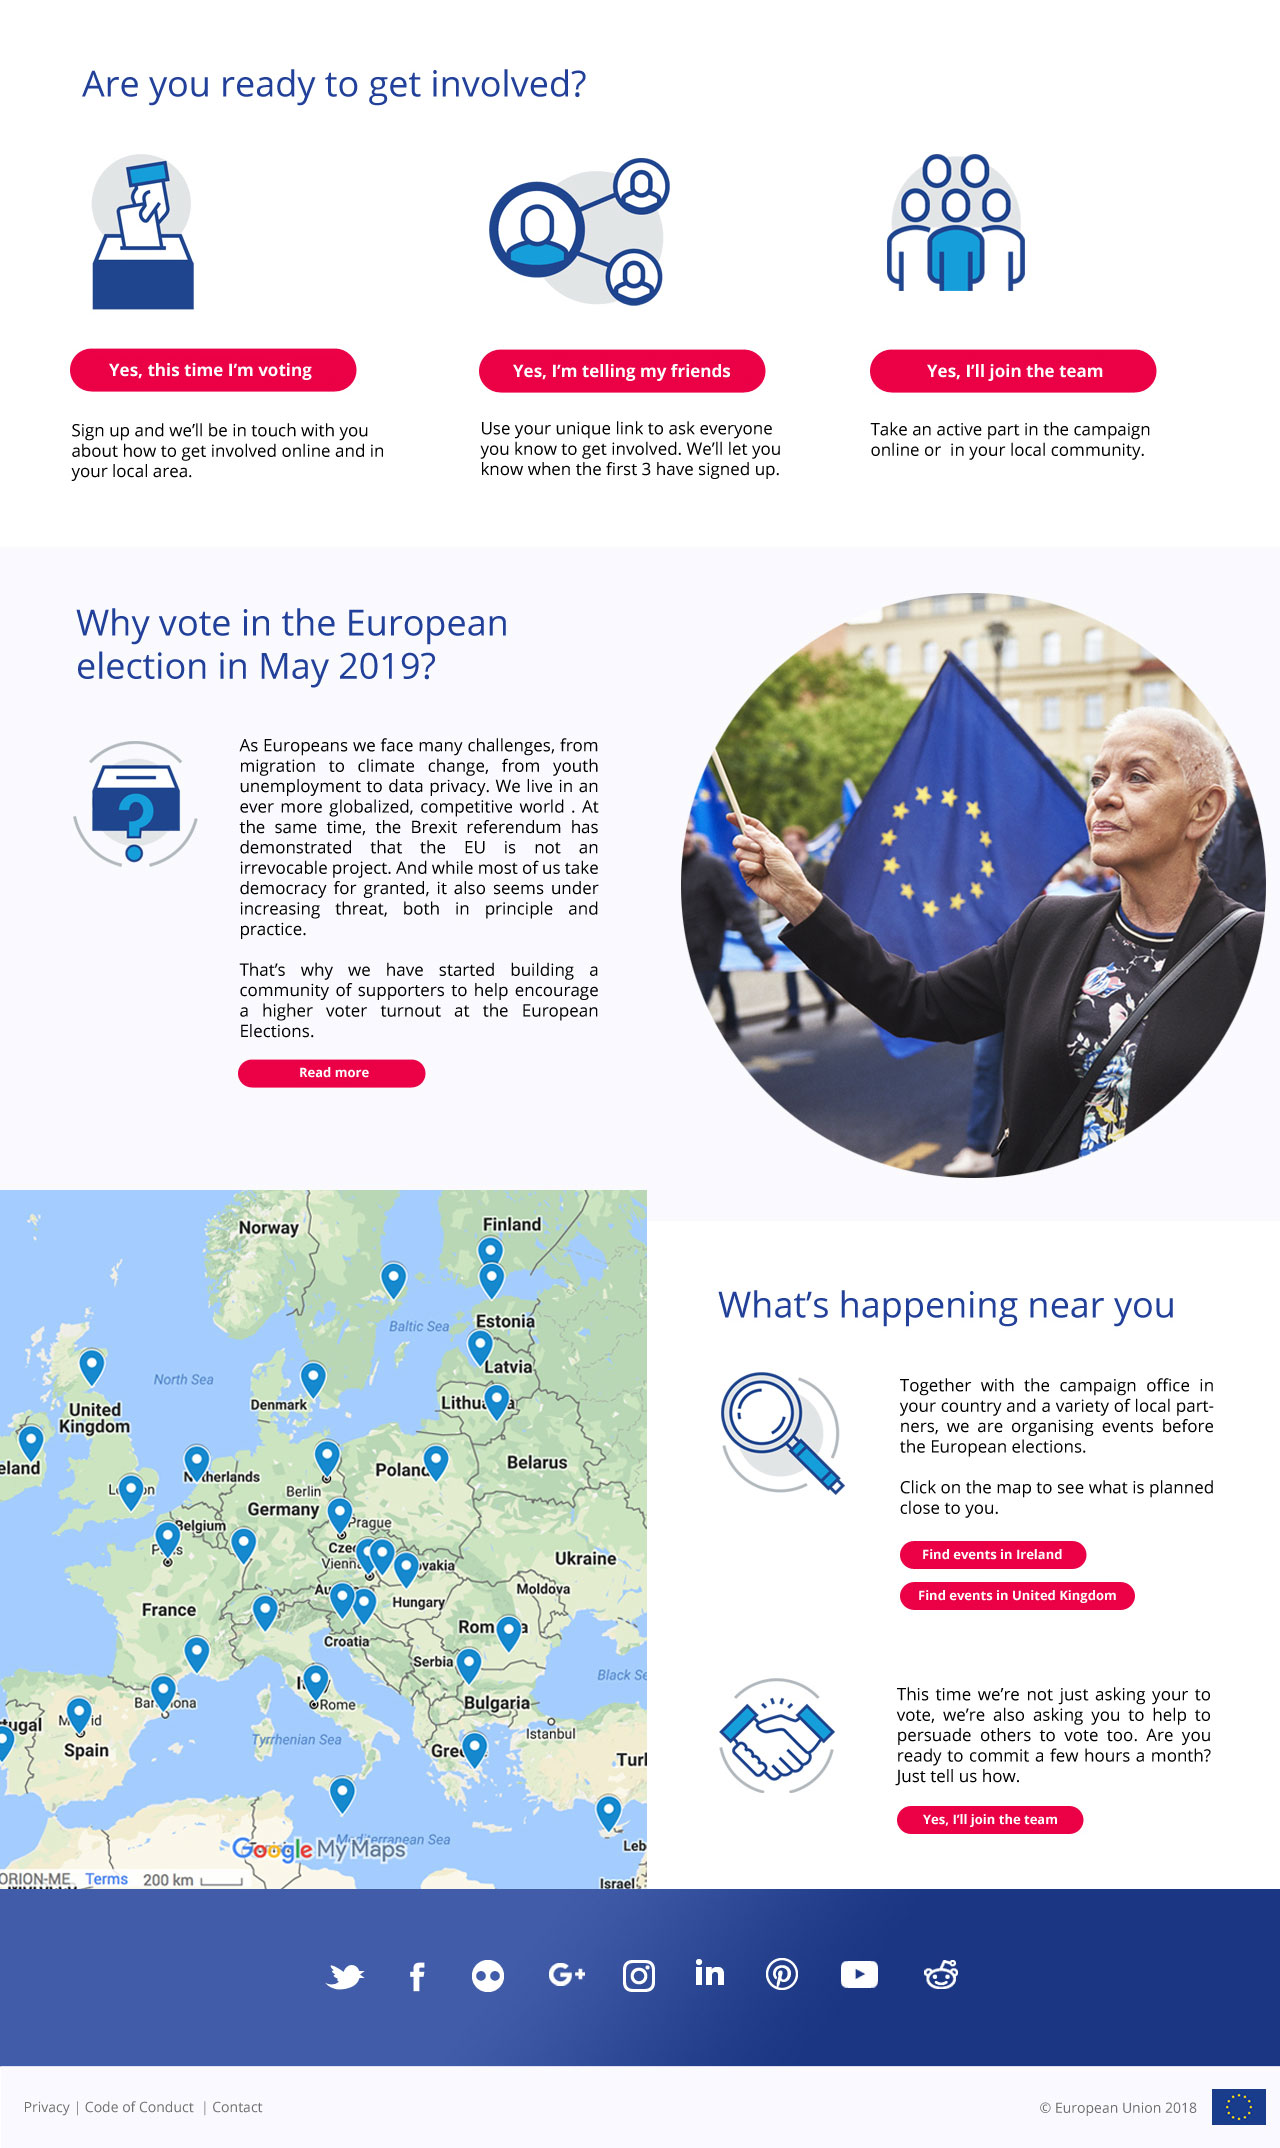 thistimeimvoting.eu calls-to-action screenshot